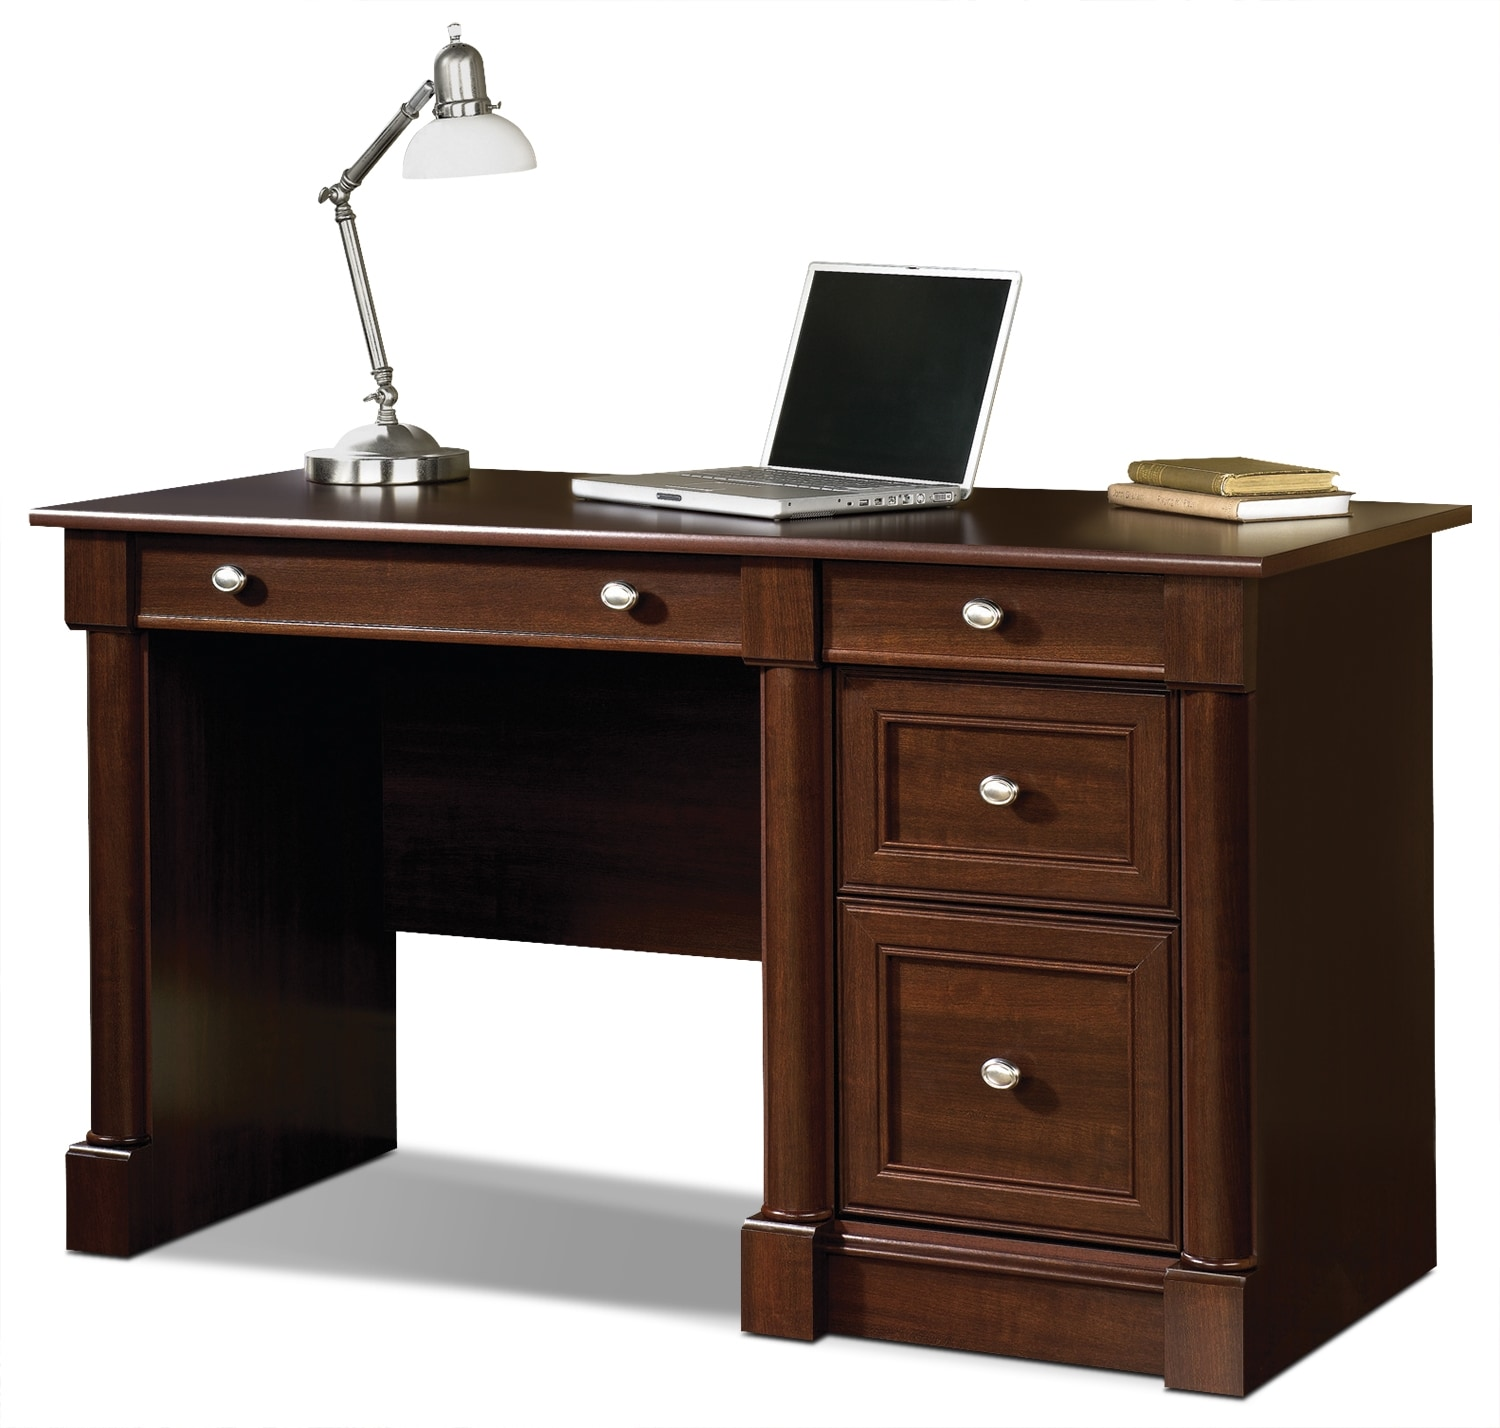 Home office furniture the brick image yvotube